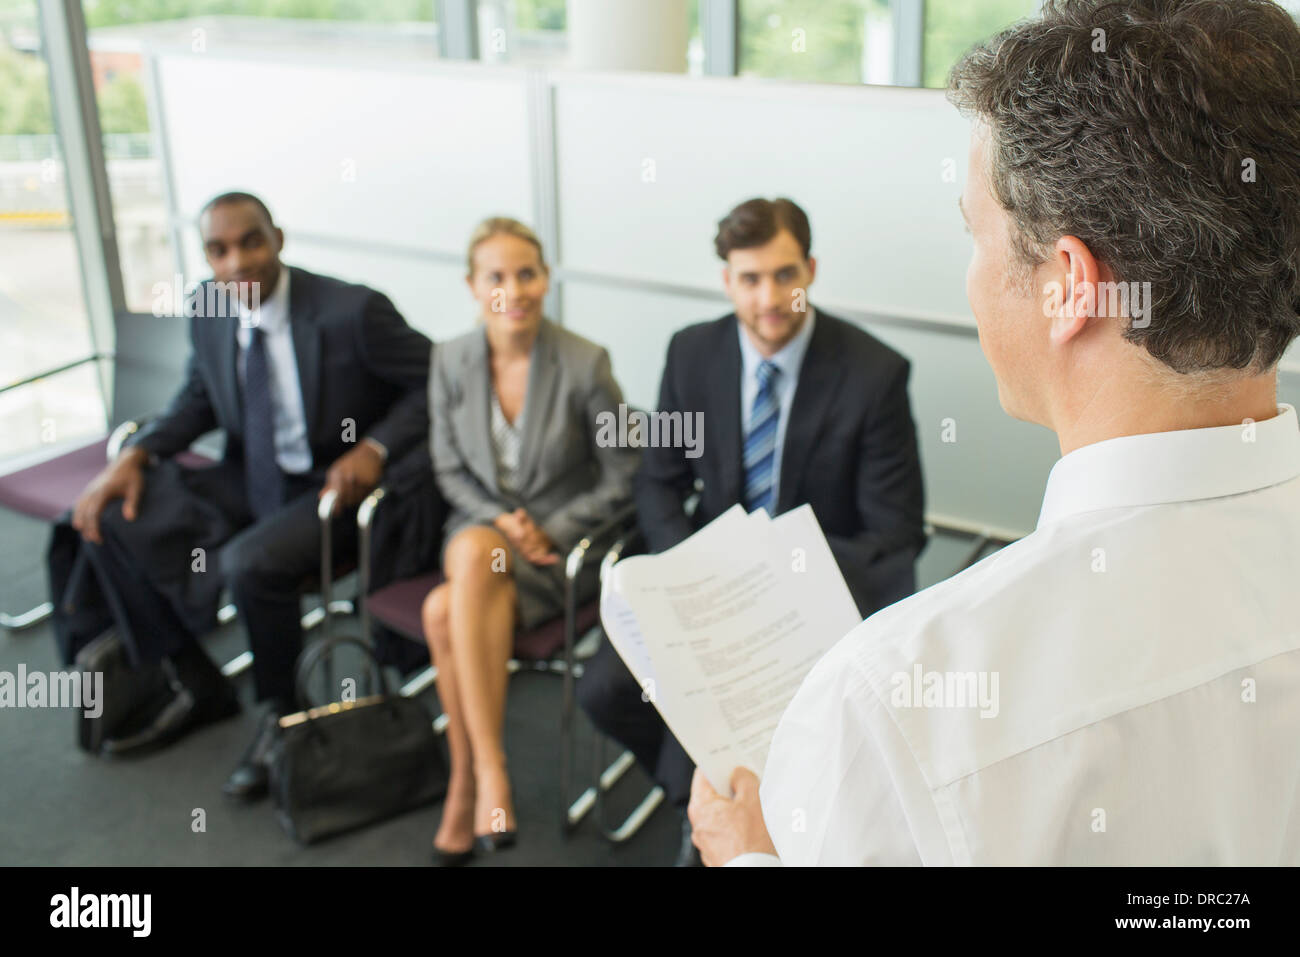 Businessman talking to colleagues in office - Stock Image